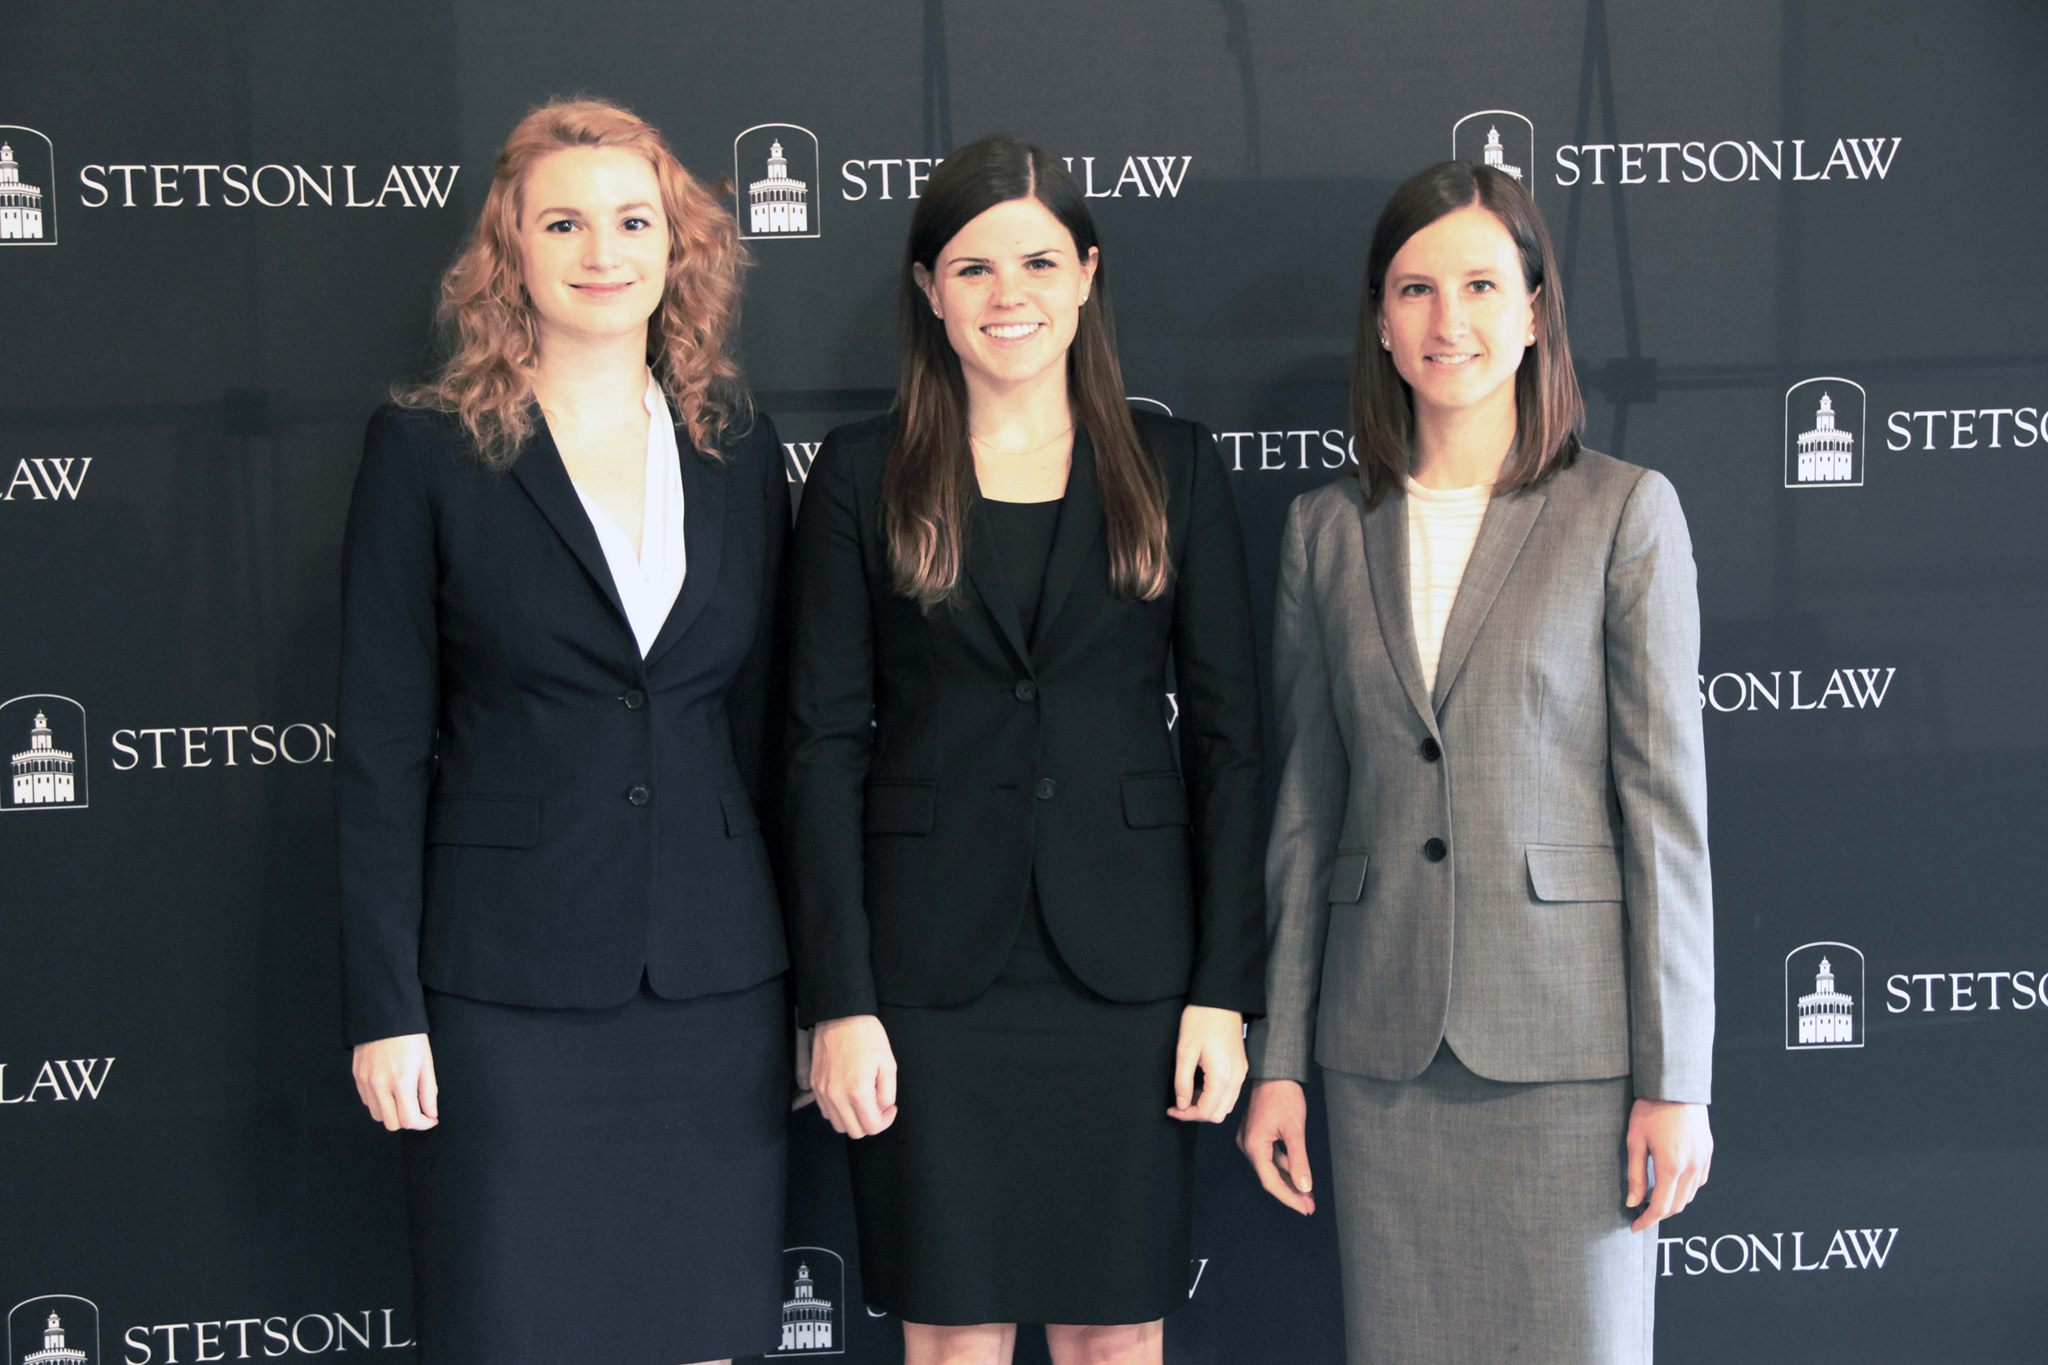 Ashley Sims ('16), Emily Singer ('16), and Elissa Hachmeister ('16),